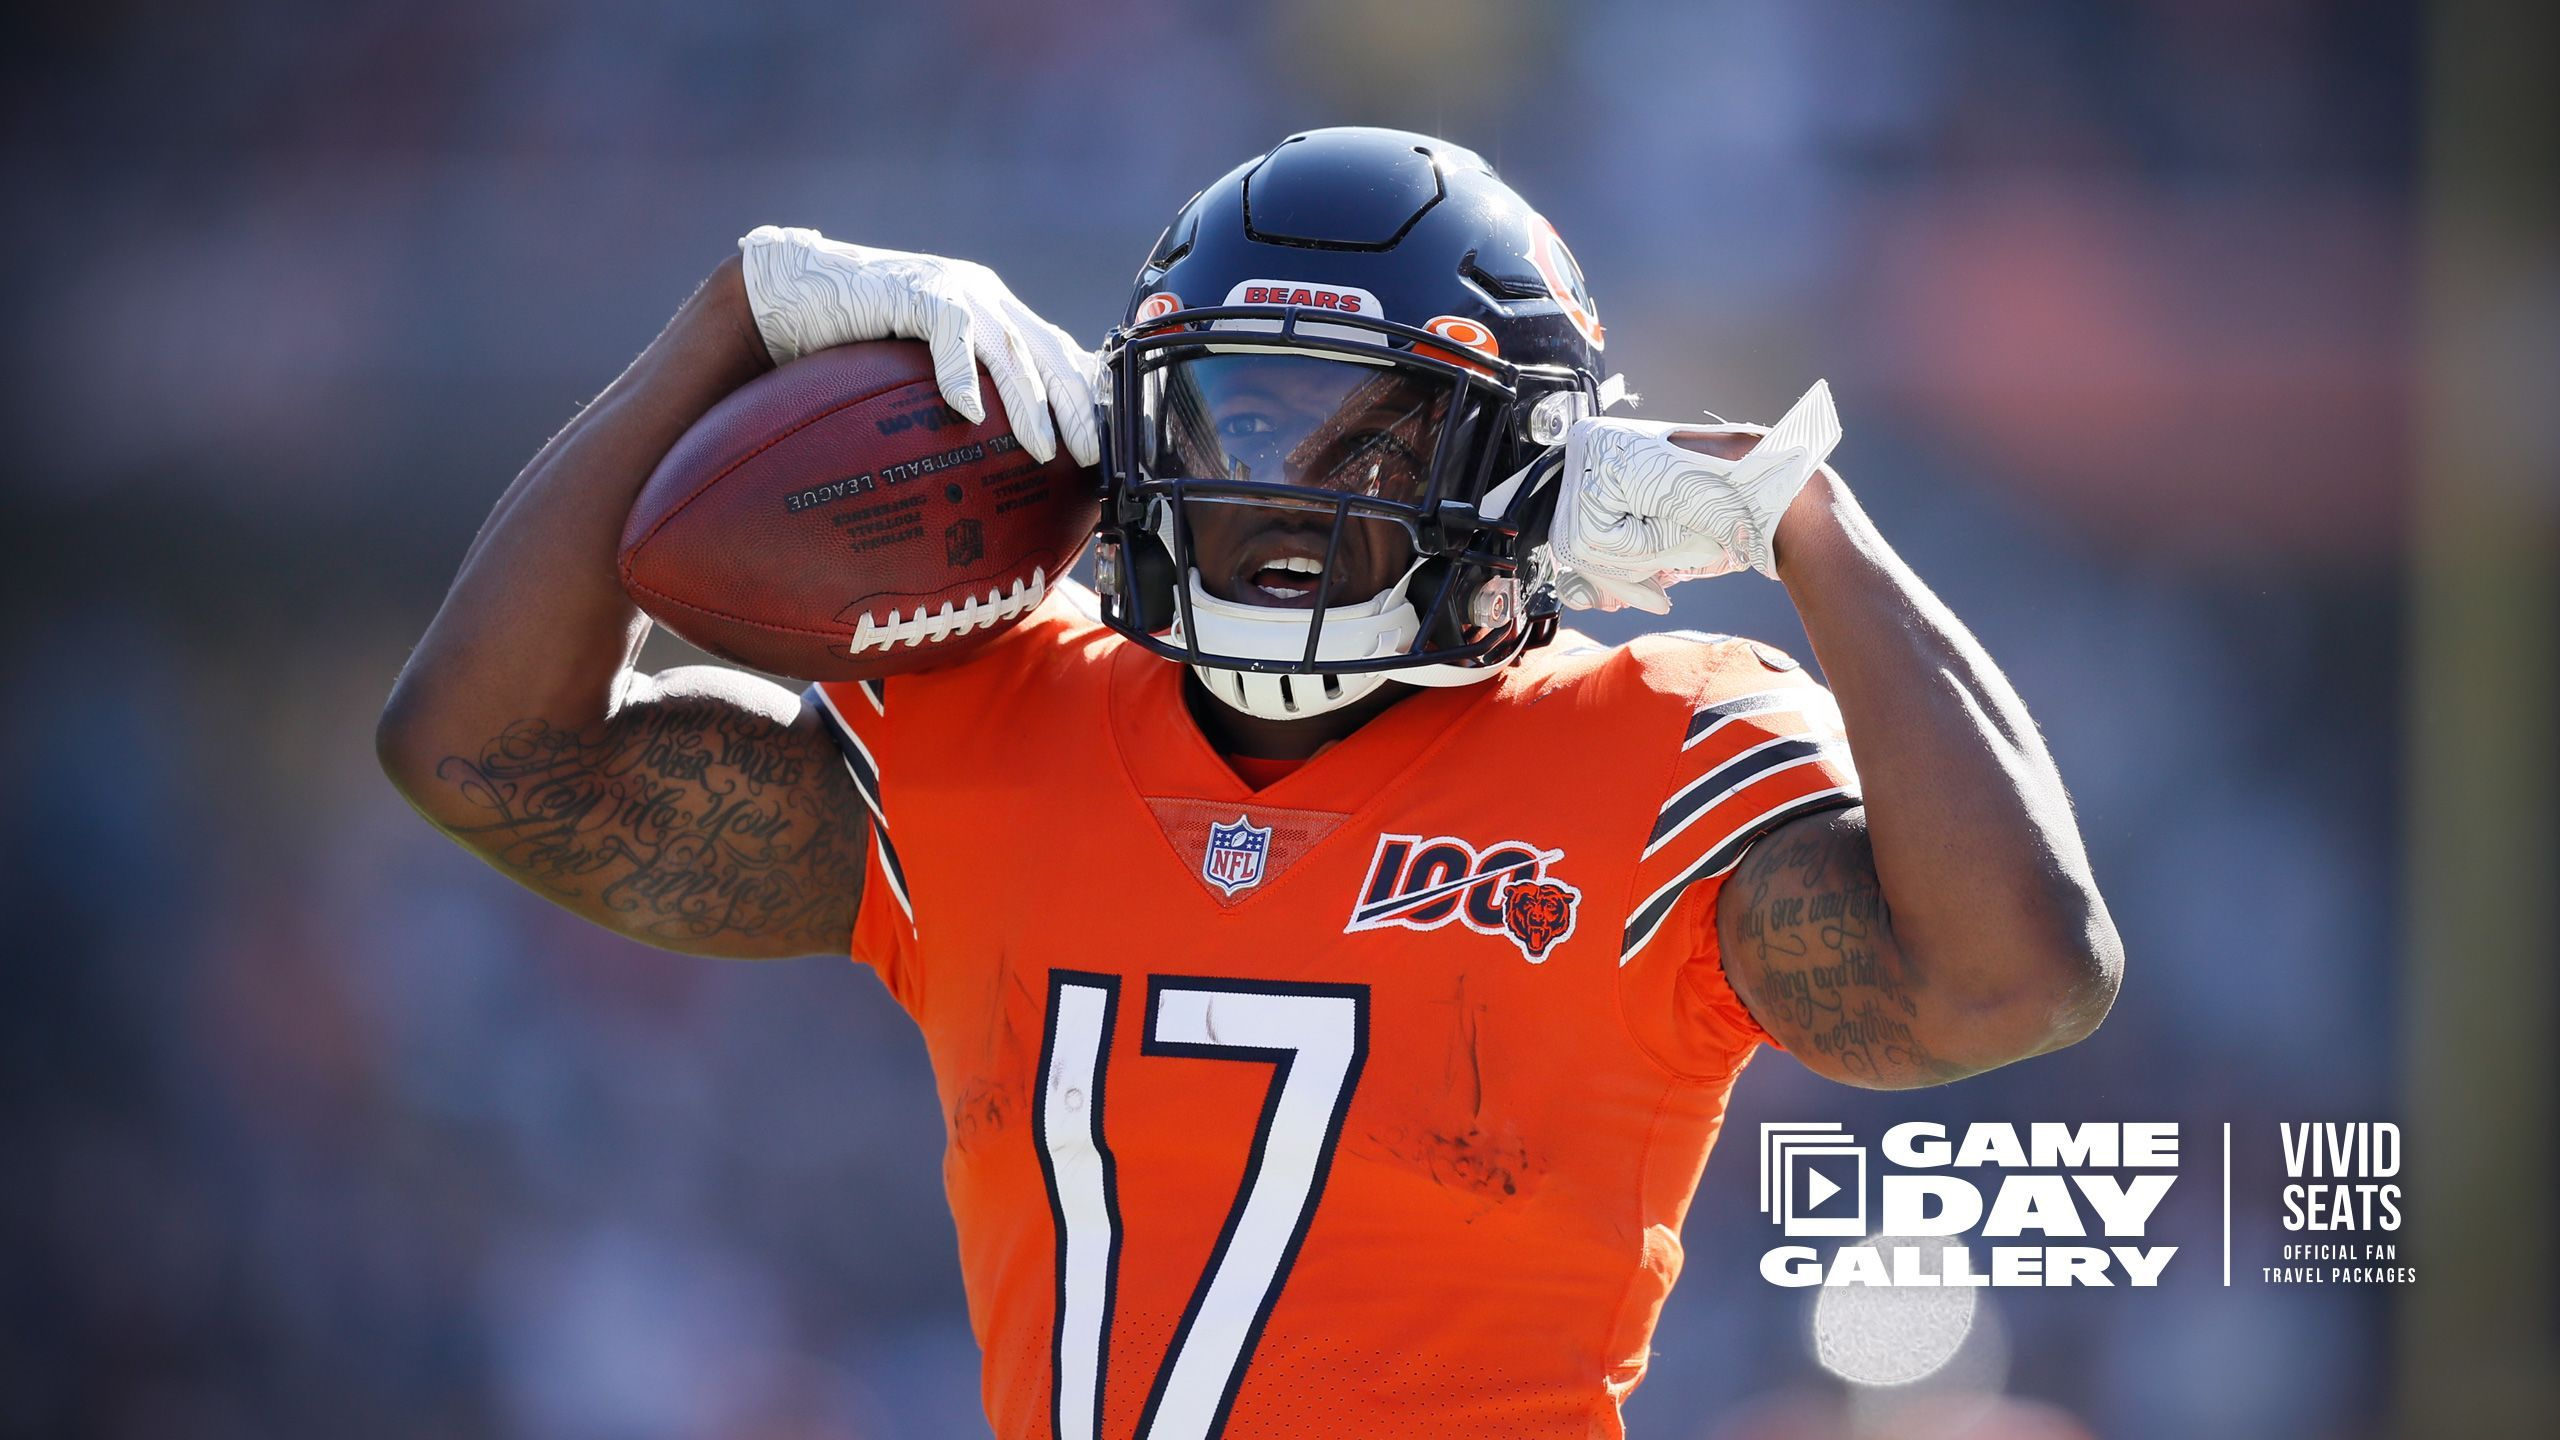 Gameday Gallery Chargers At Bears Chicago Bears Chicago Bears Football Gameday